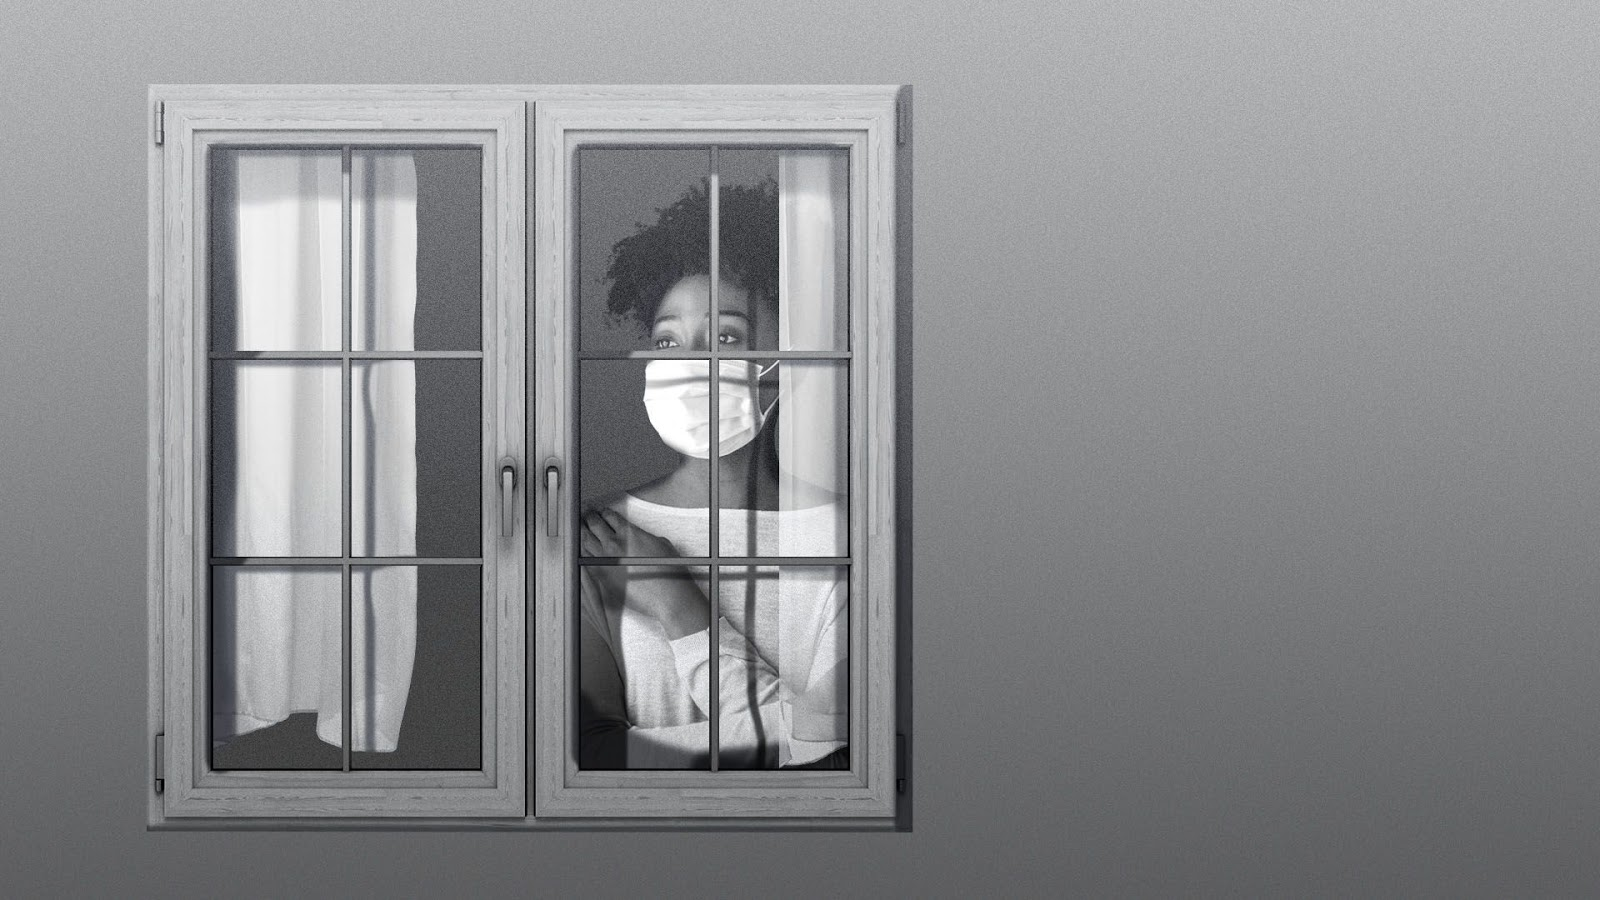 A woman wearing a mask looks out at the world through a window.